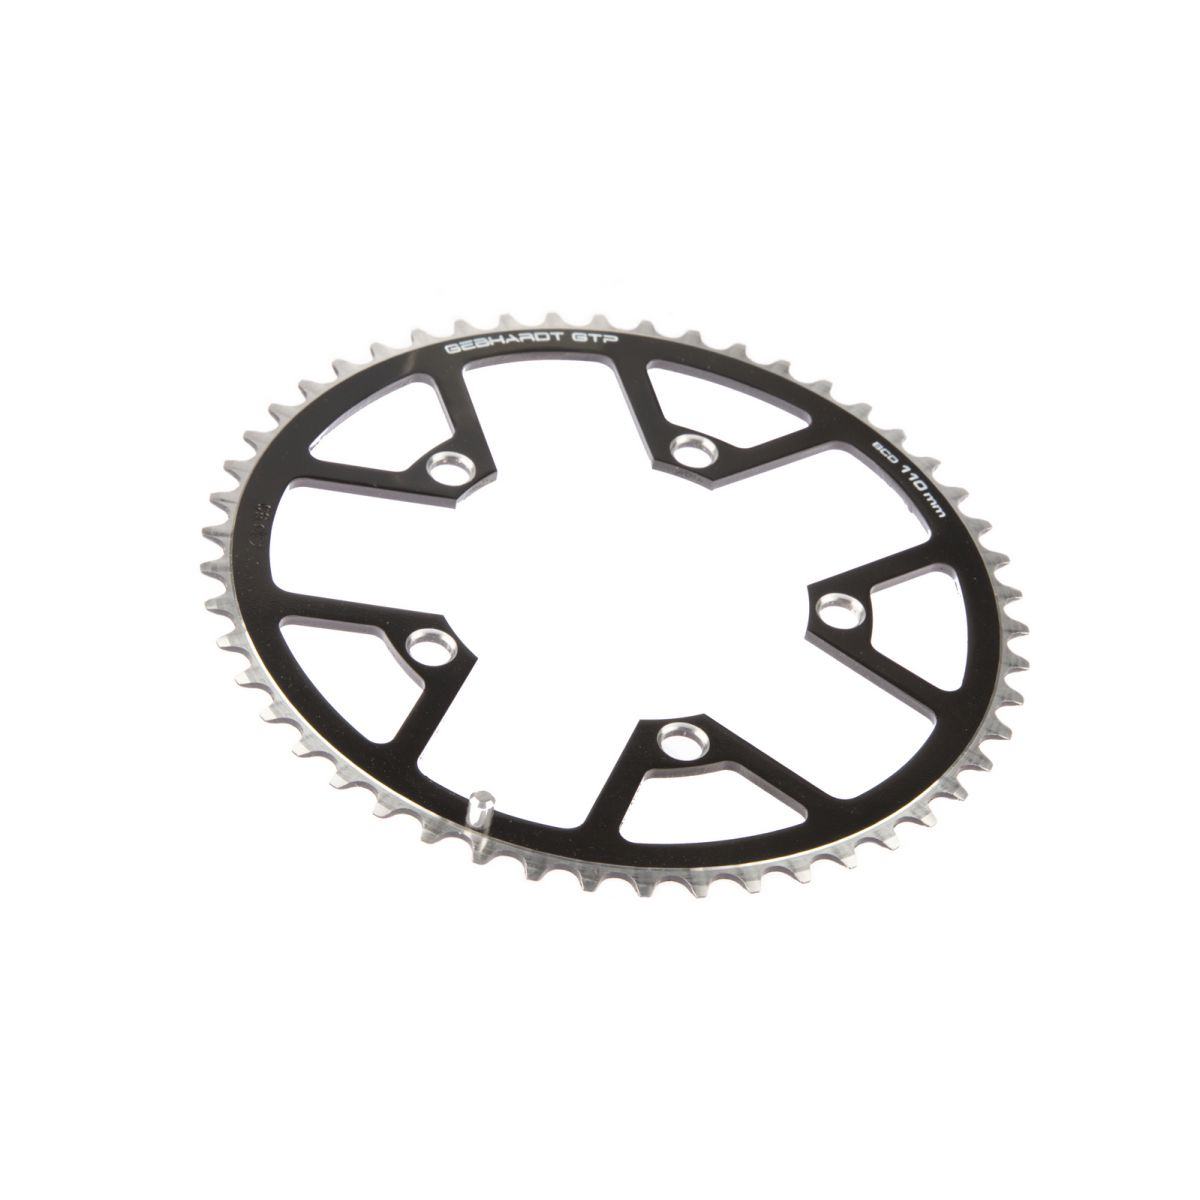 gebhardt chainring classic bcd 110 mm 5hole 48t black